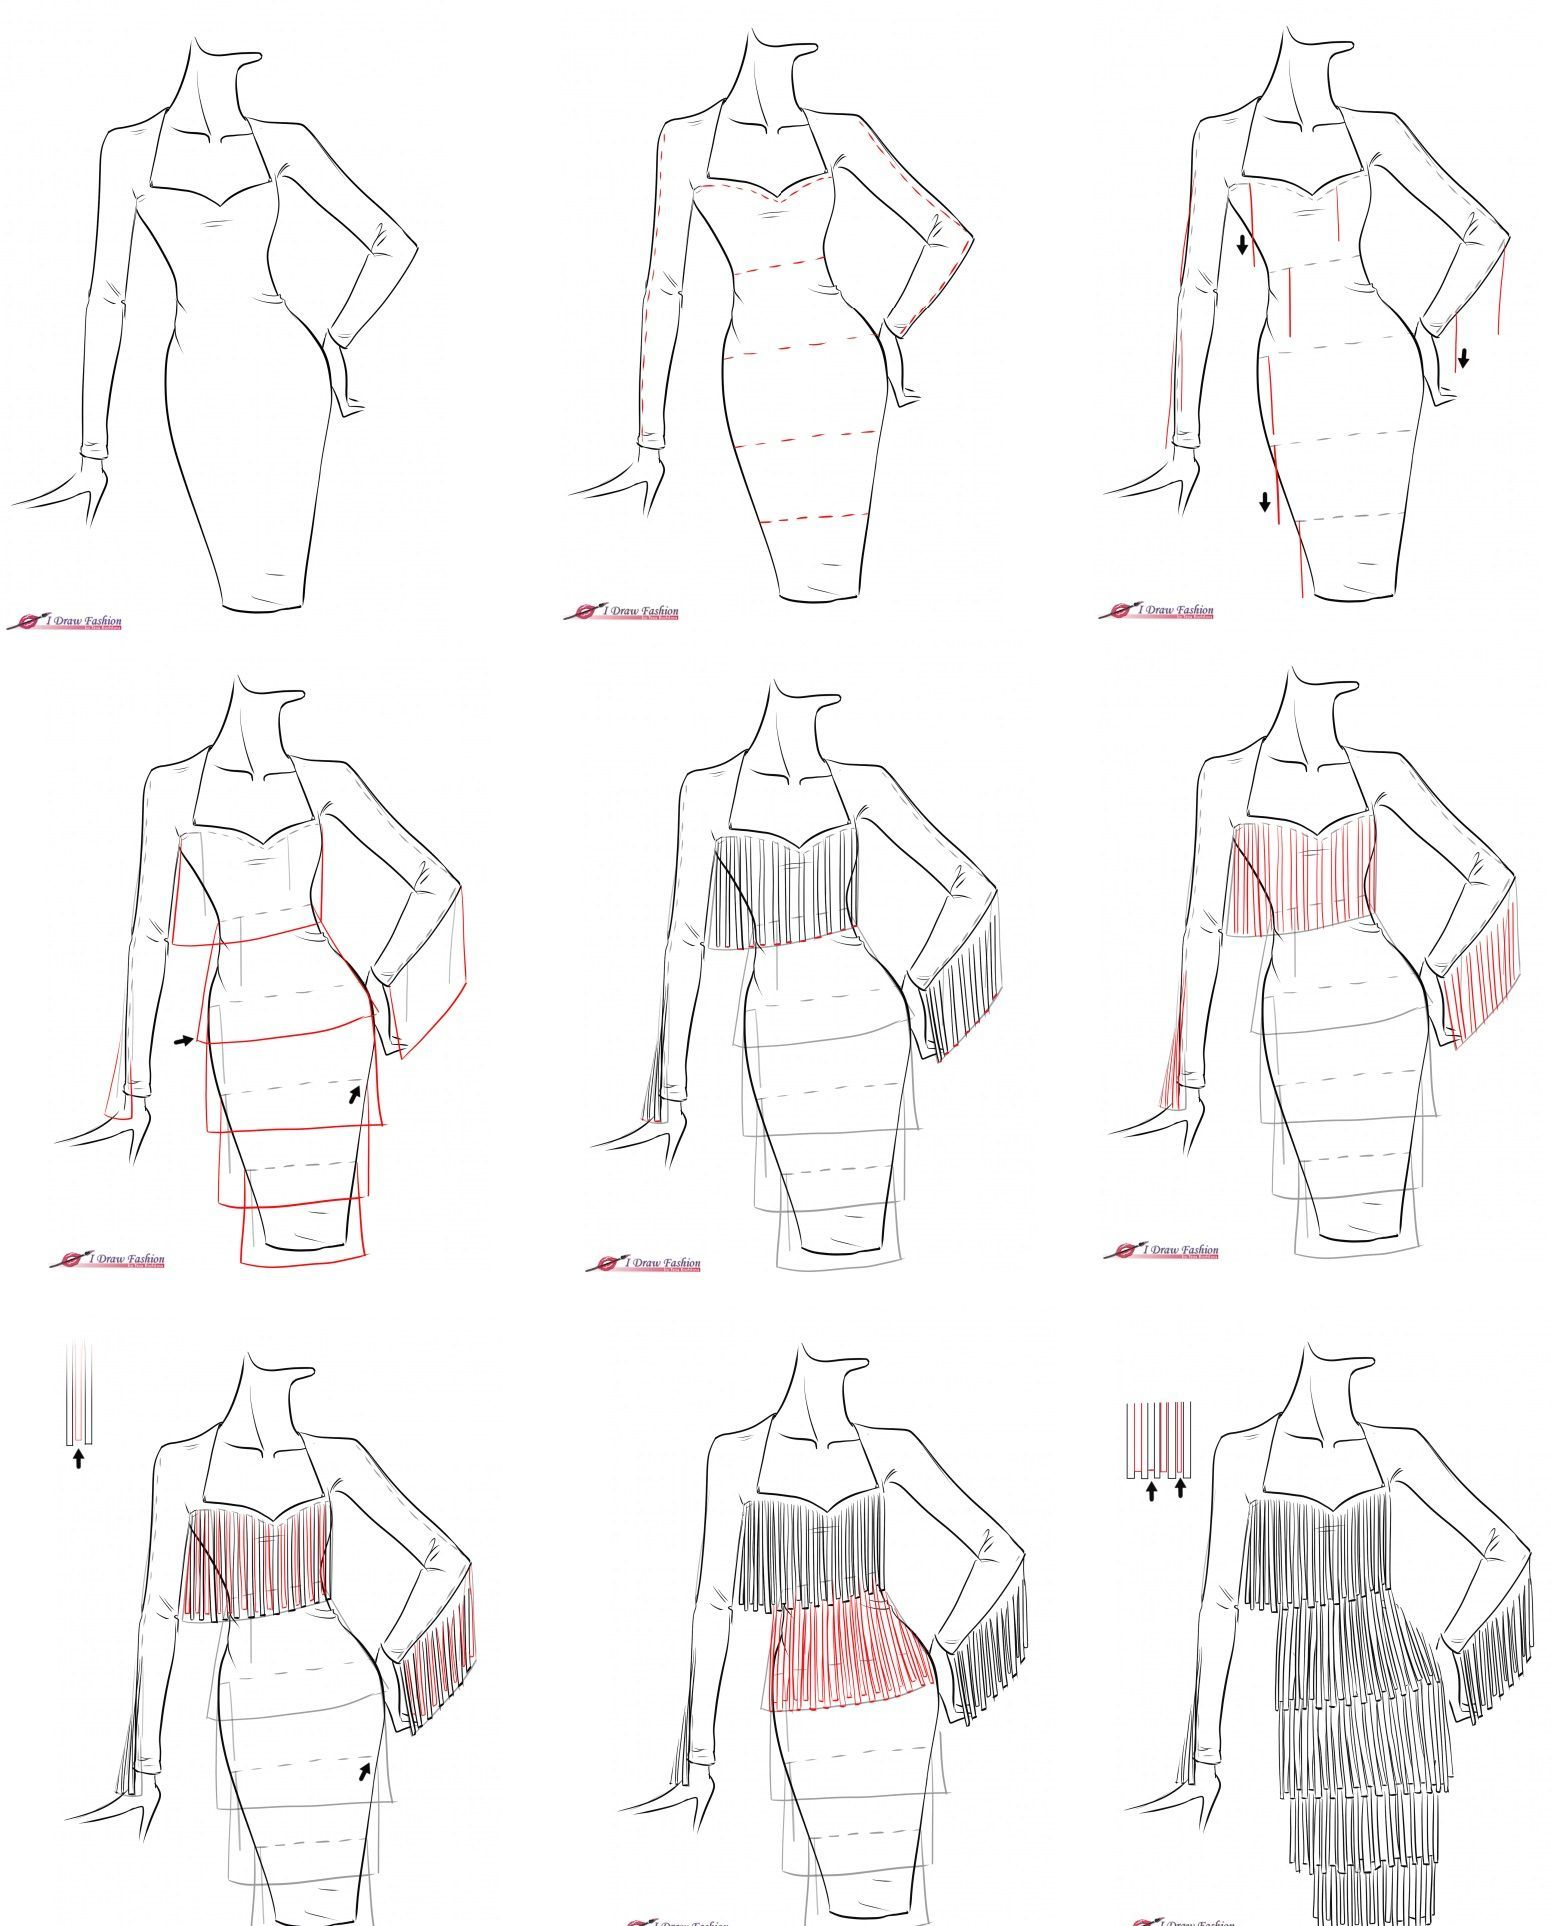 A Step By Step Tutorial On How To Draw Fringe Dress Step By Step Sketches Illustration Fashion Design Fashion Illustration Sketches